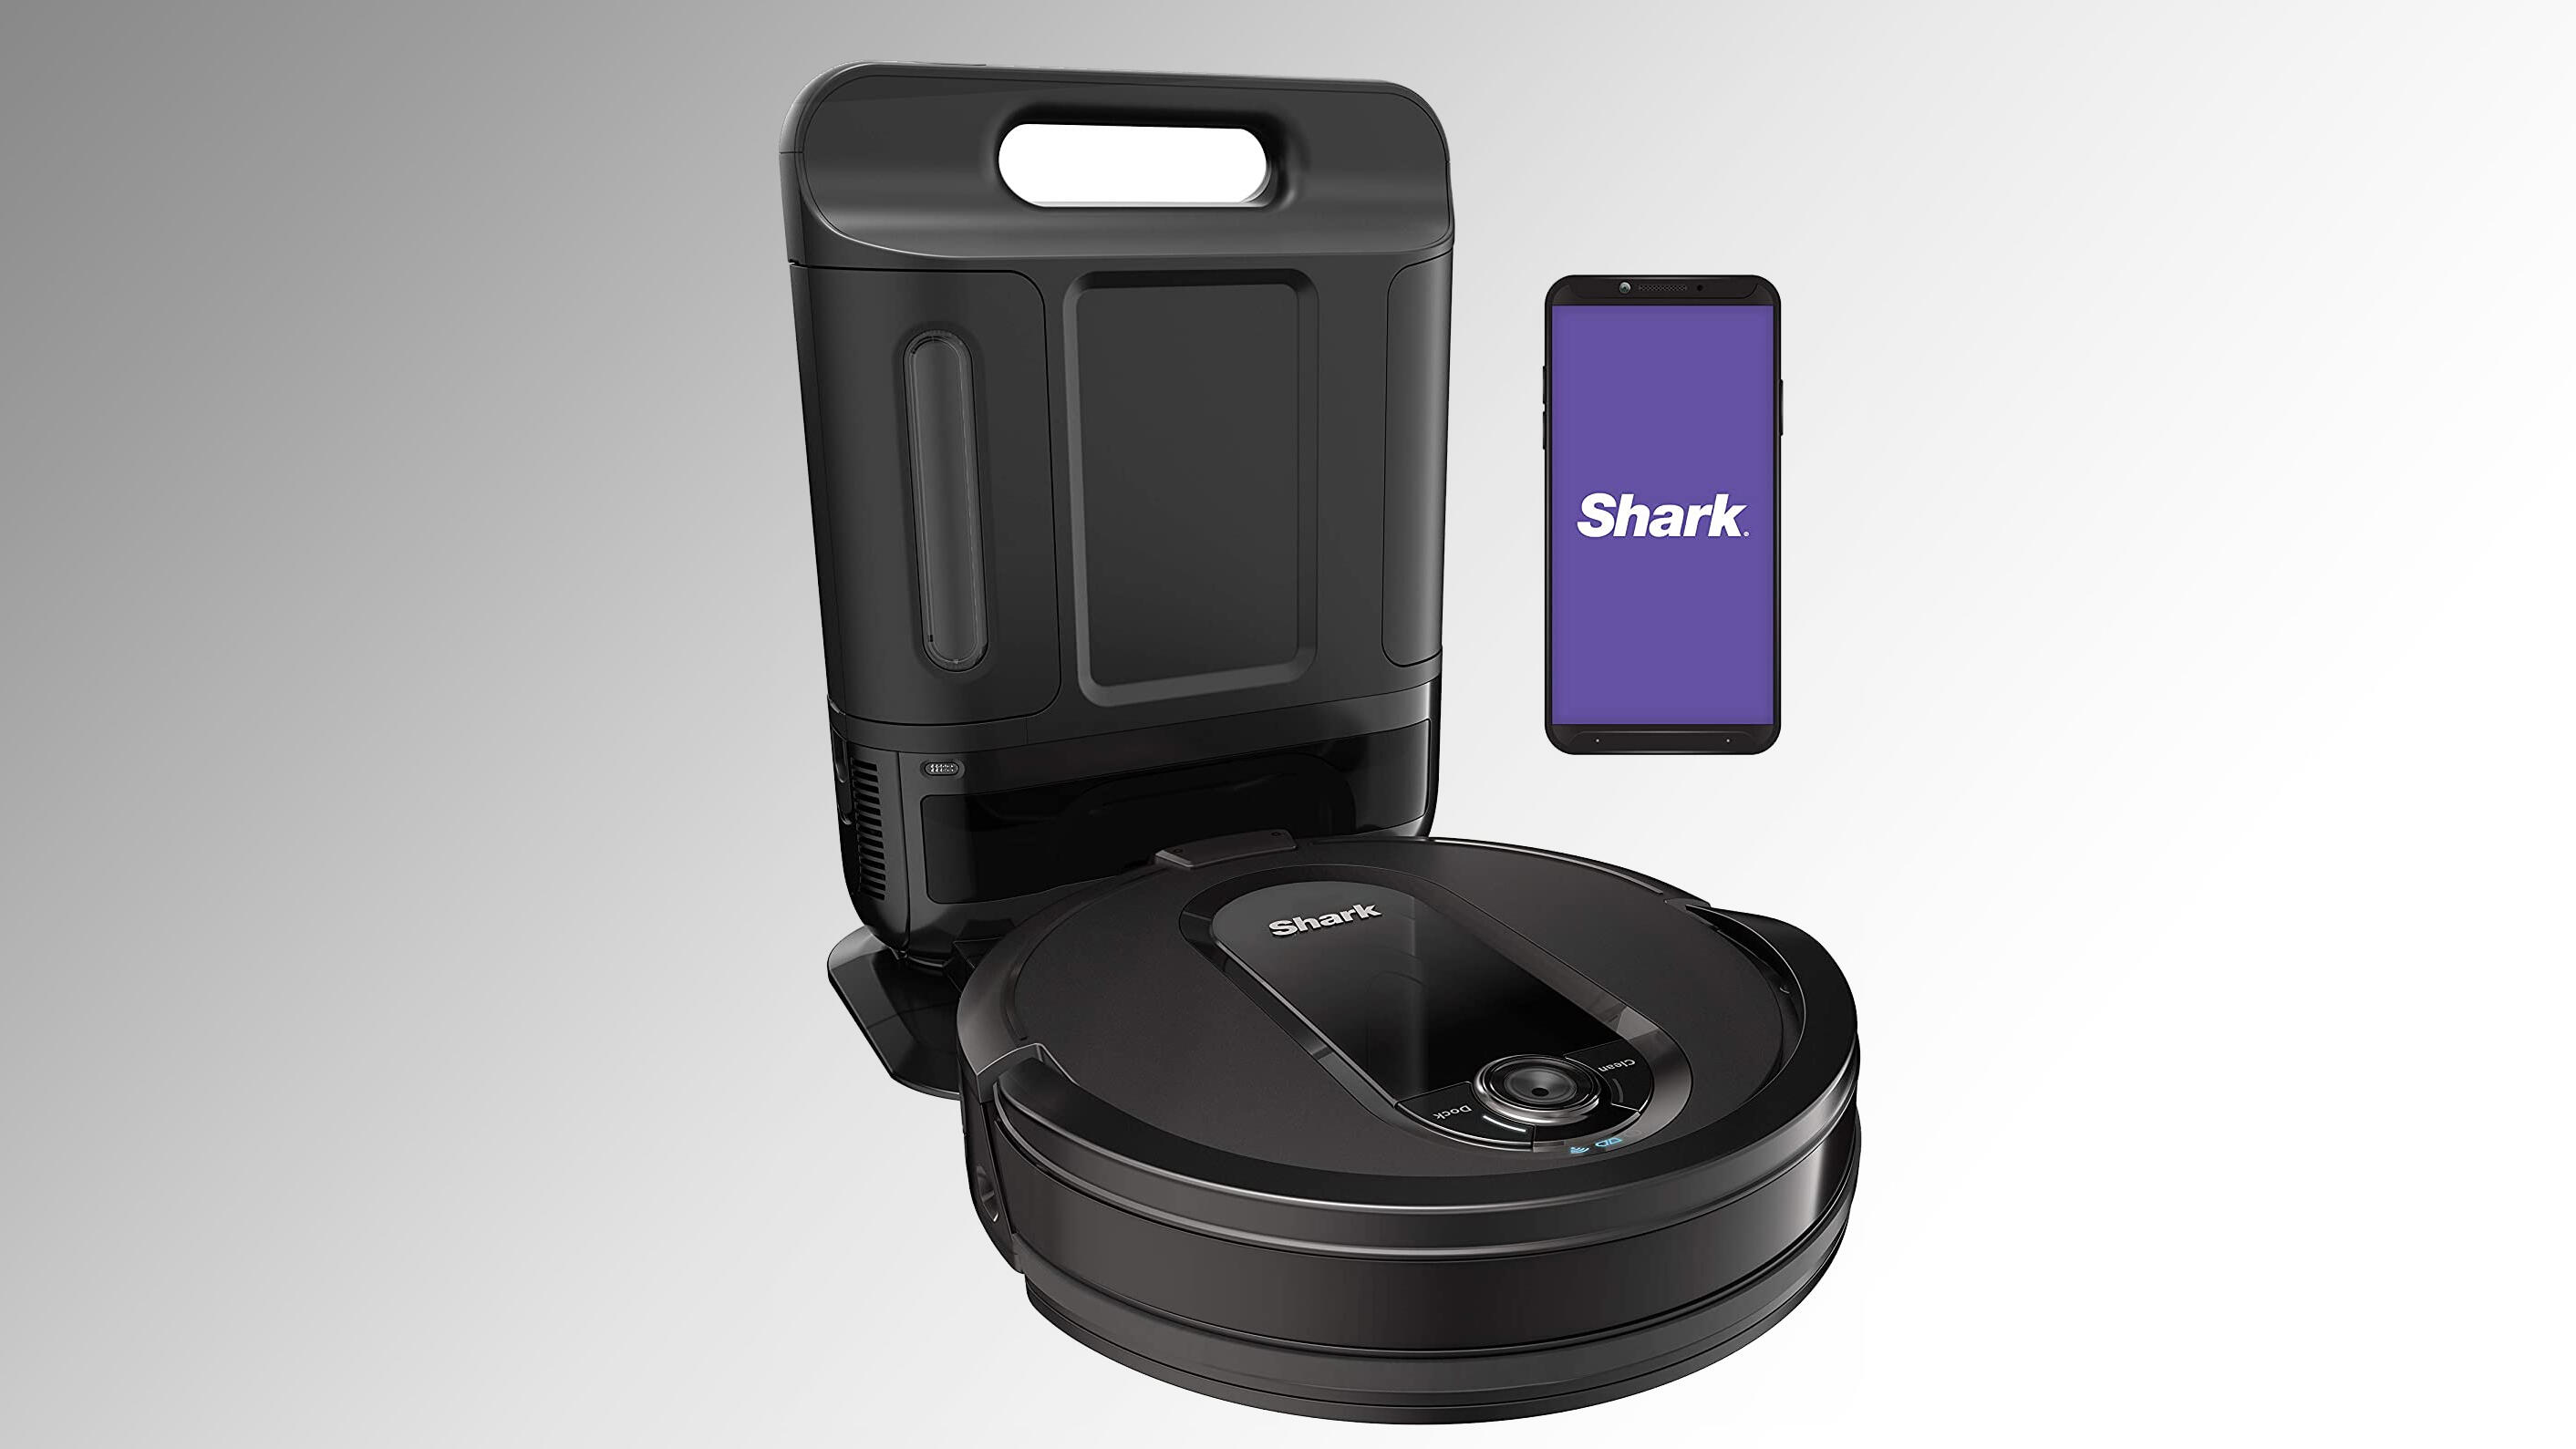 cnet.com - Dave Johnson - Get Shark's self-emptying Shark IQ RV1001AE robot vacuum for just $419